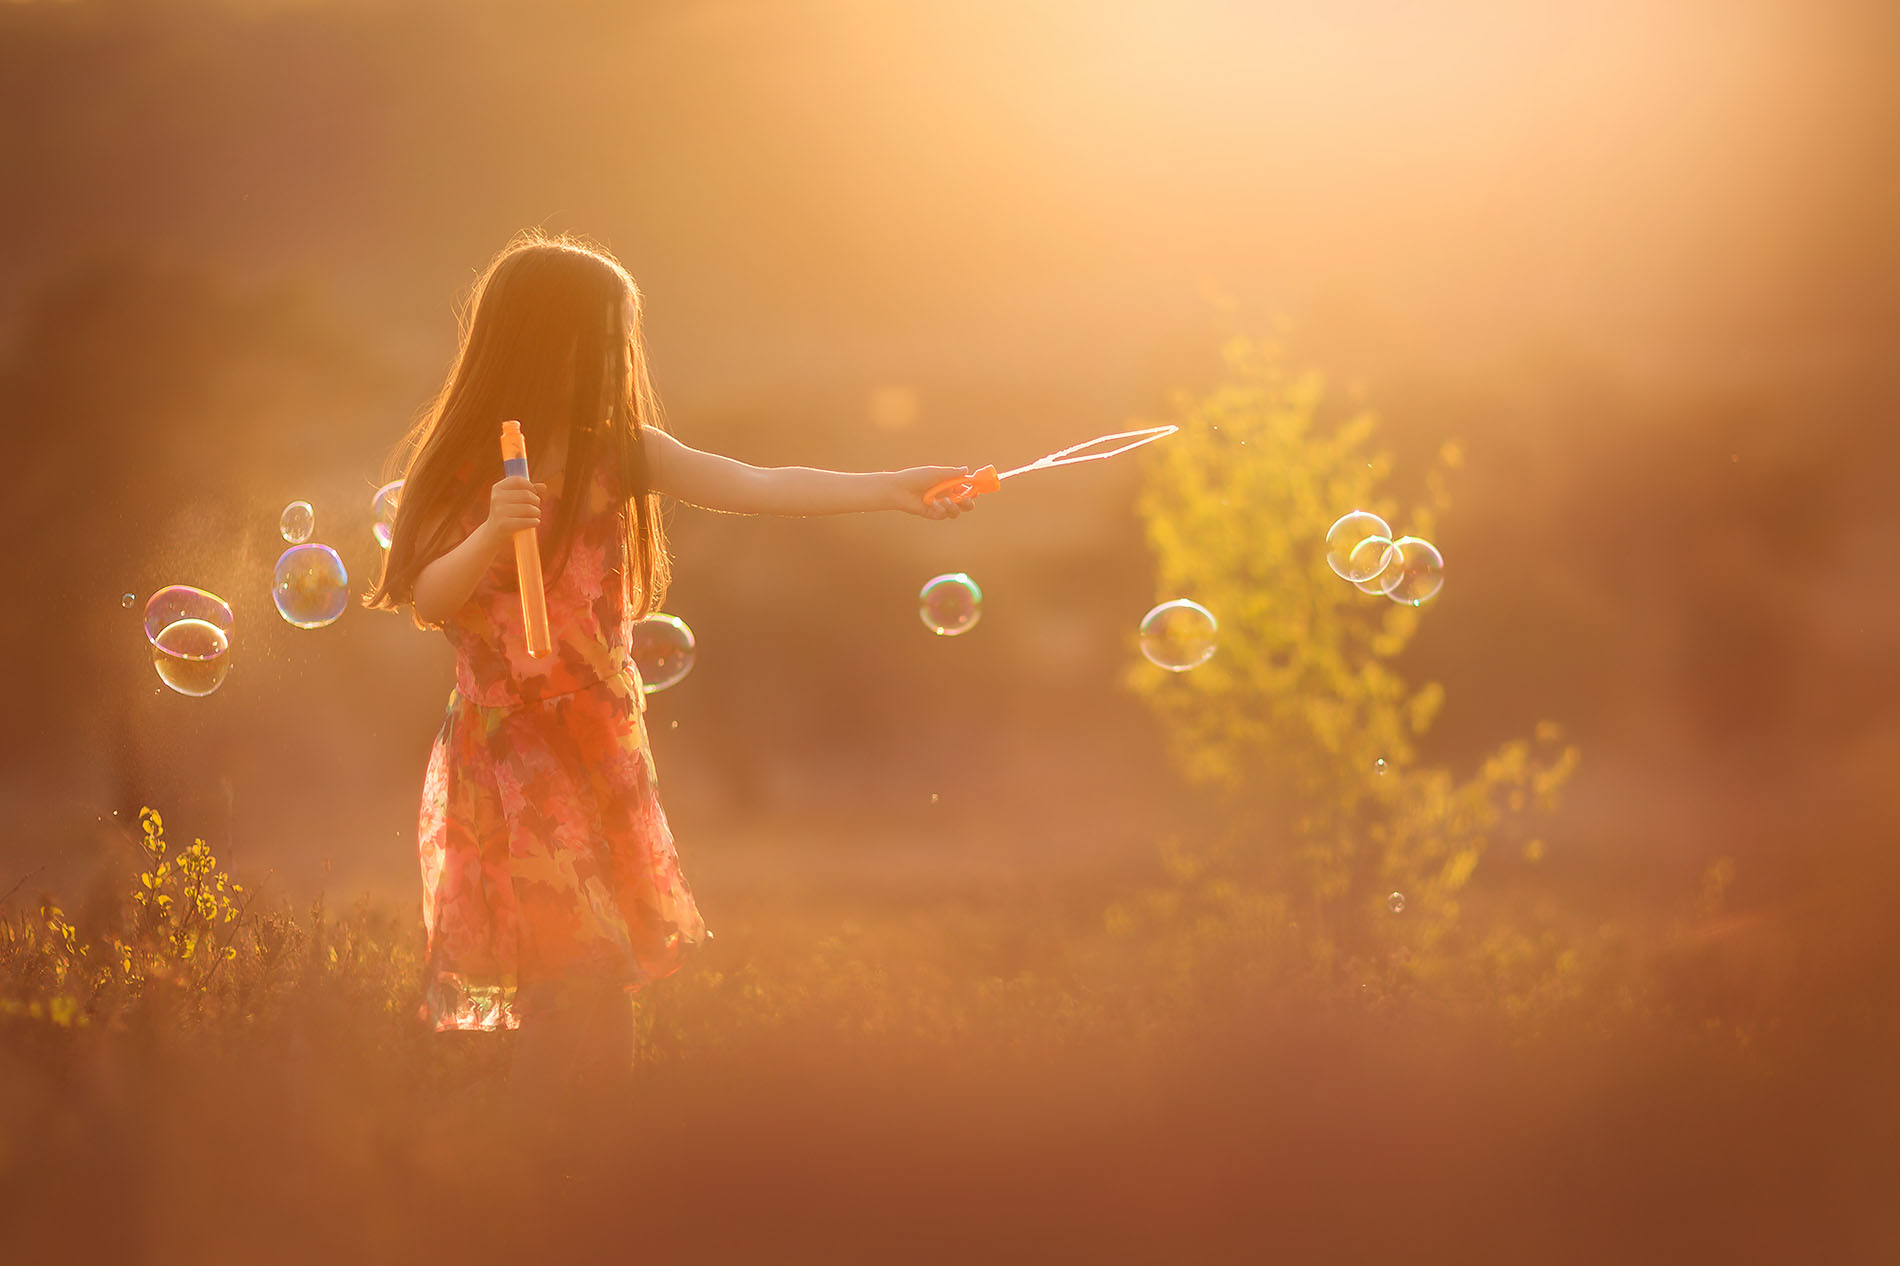 Canon color portrait of a little girl with long dark hair blowing bubbles during sunset in nature by Willie Kers